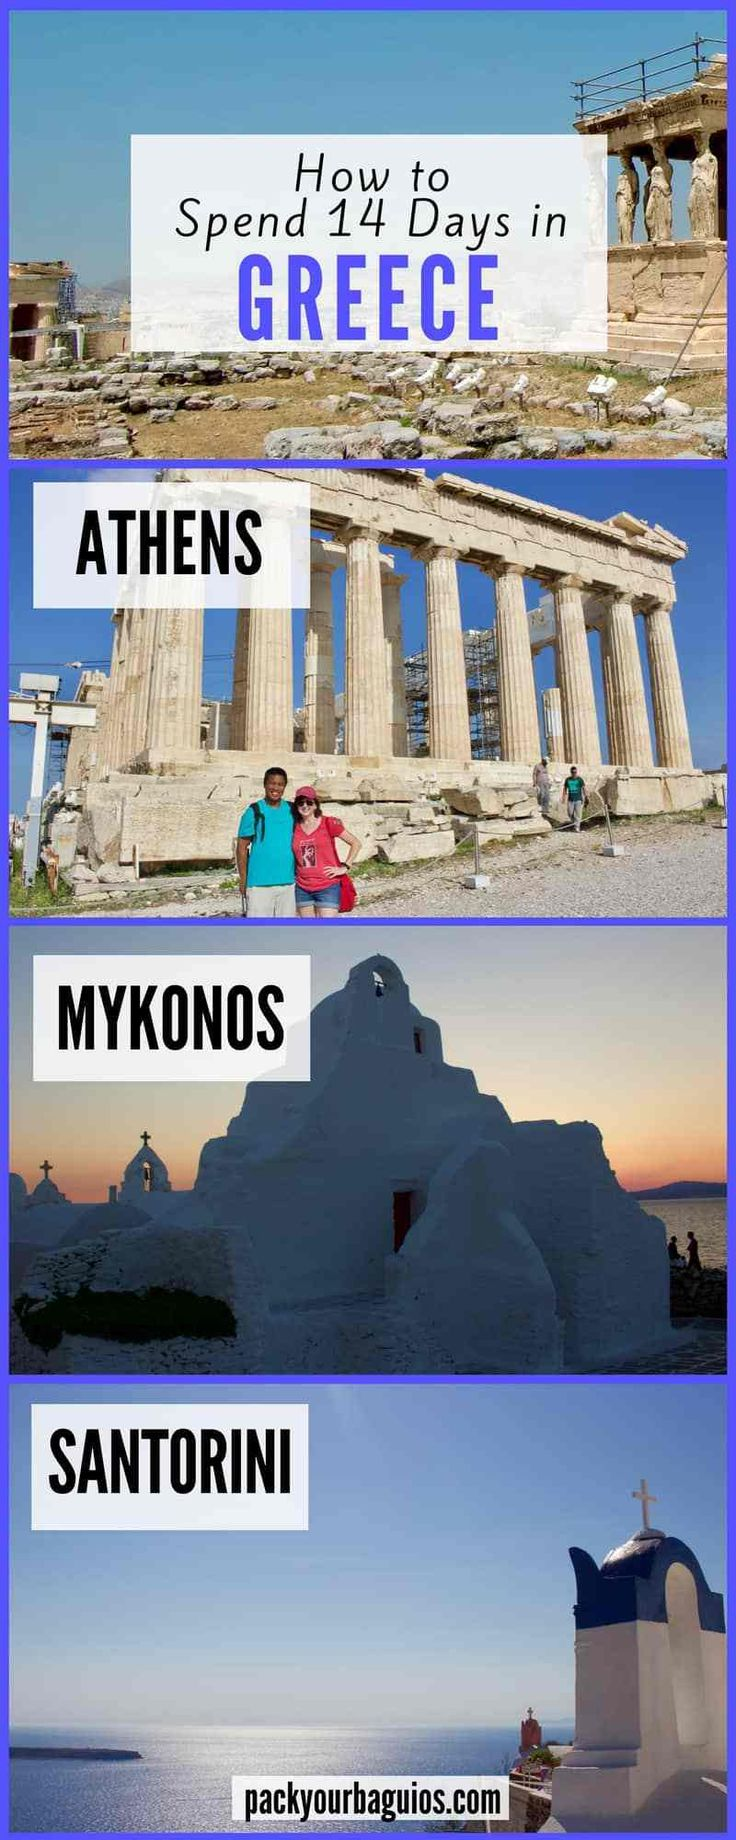 As a teacher of ancient history, I knew I wanted to return to Greece. This time I wanted to be able to spend more time absorbing the history and beautiful landscape. We planned our return trip focusing on the locations that we had loved the most the first time around: Athens, Mykonos, Santorini, and Crete. You can easily adapt your trip to Greece to fit your own interests.